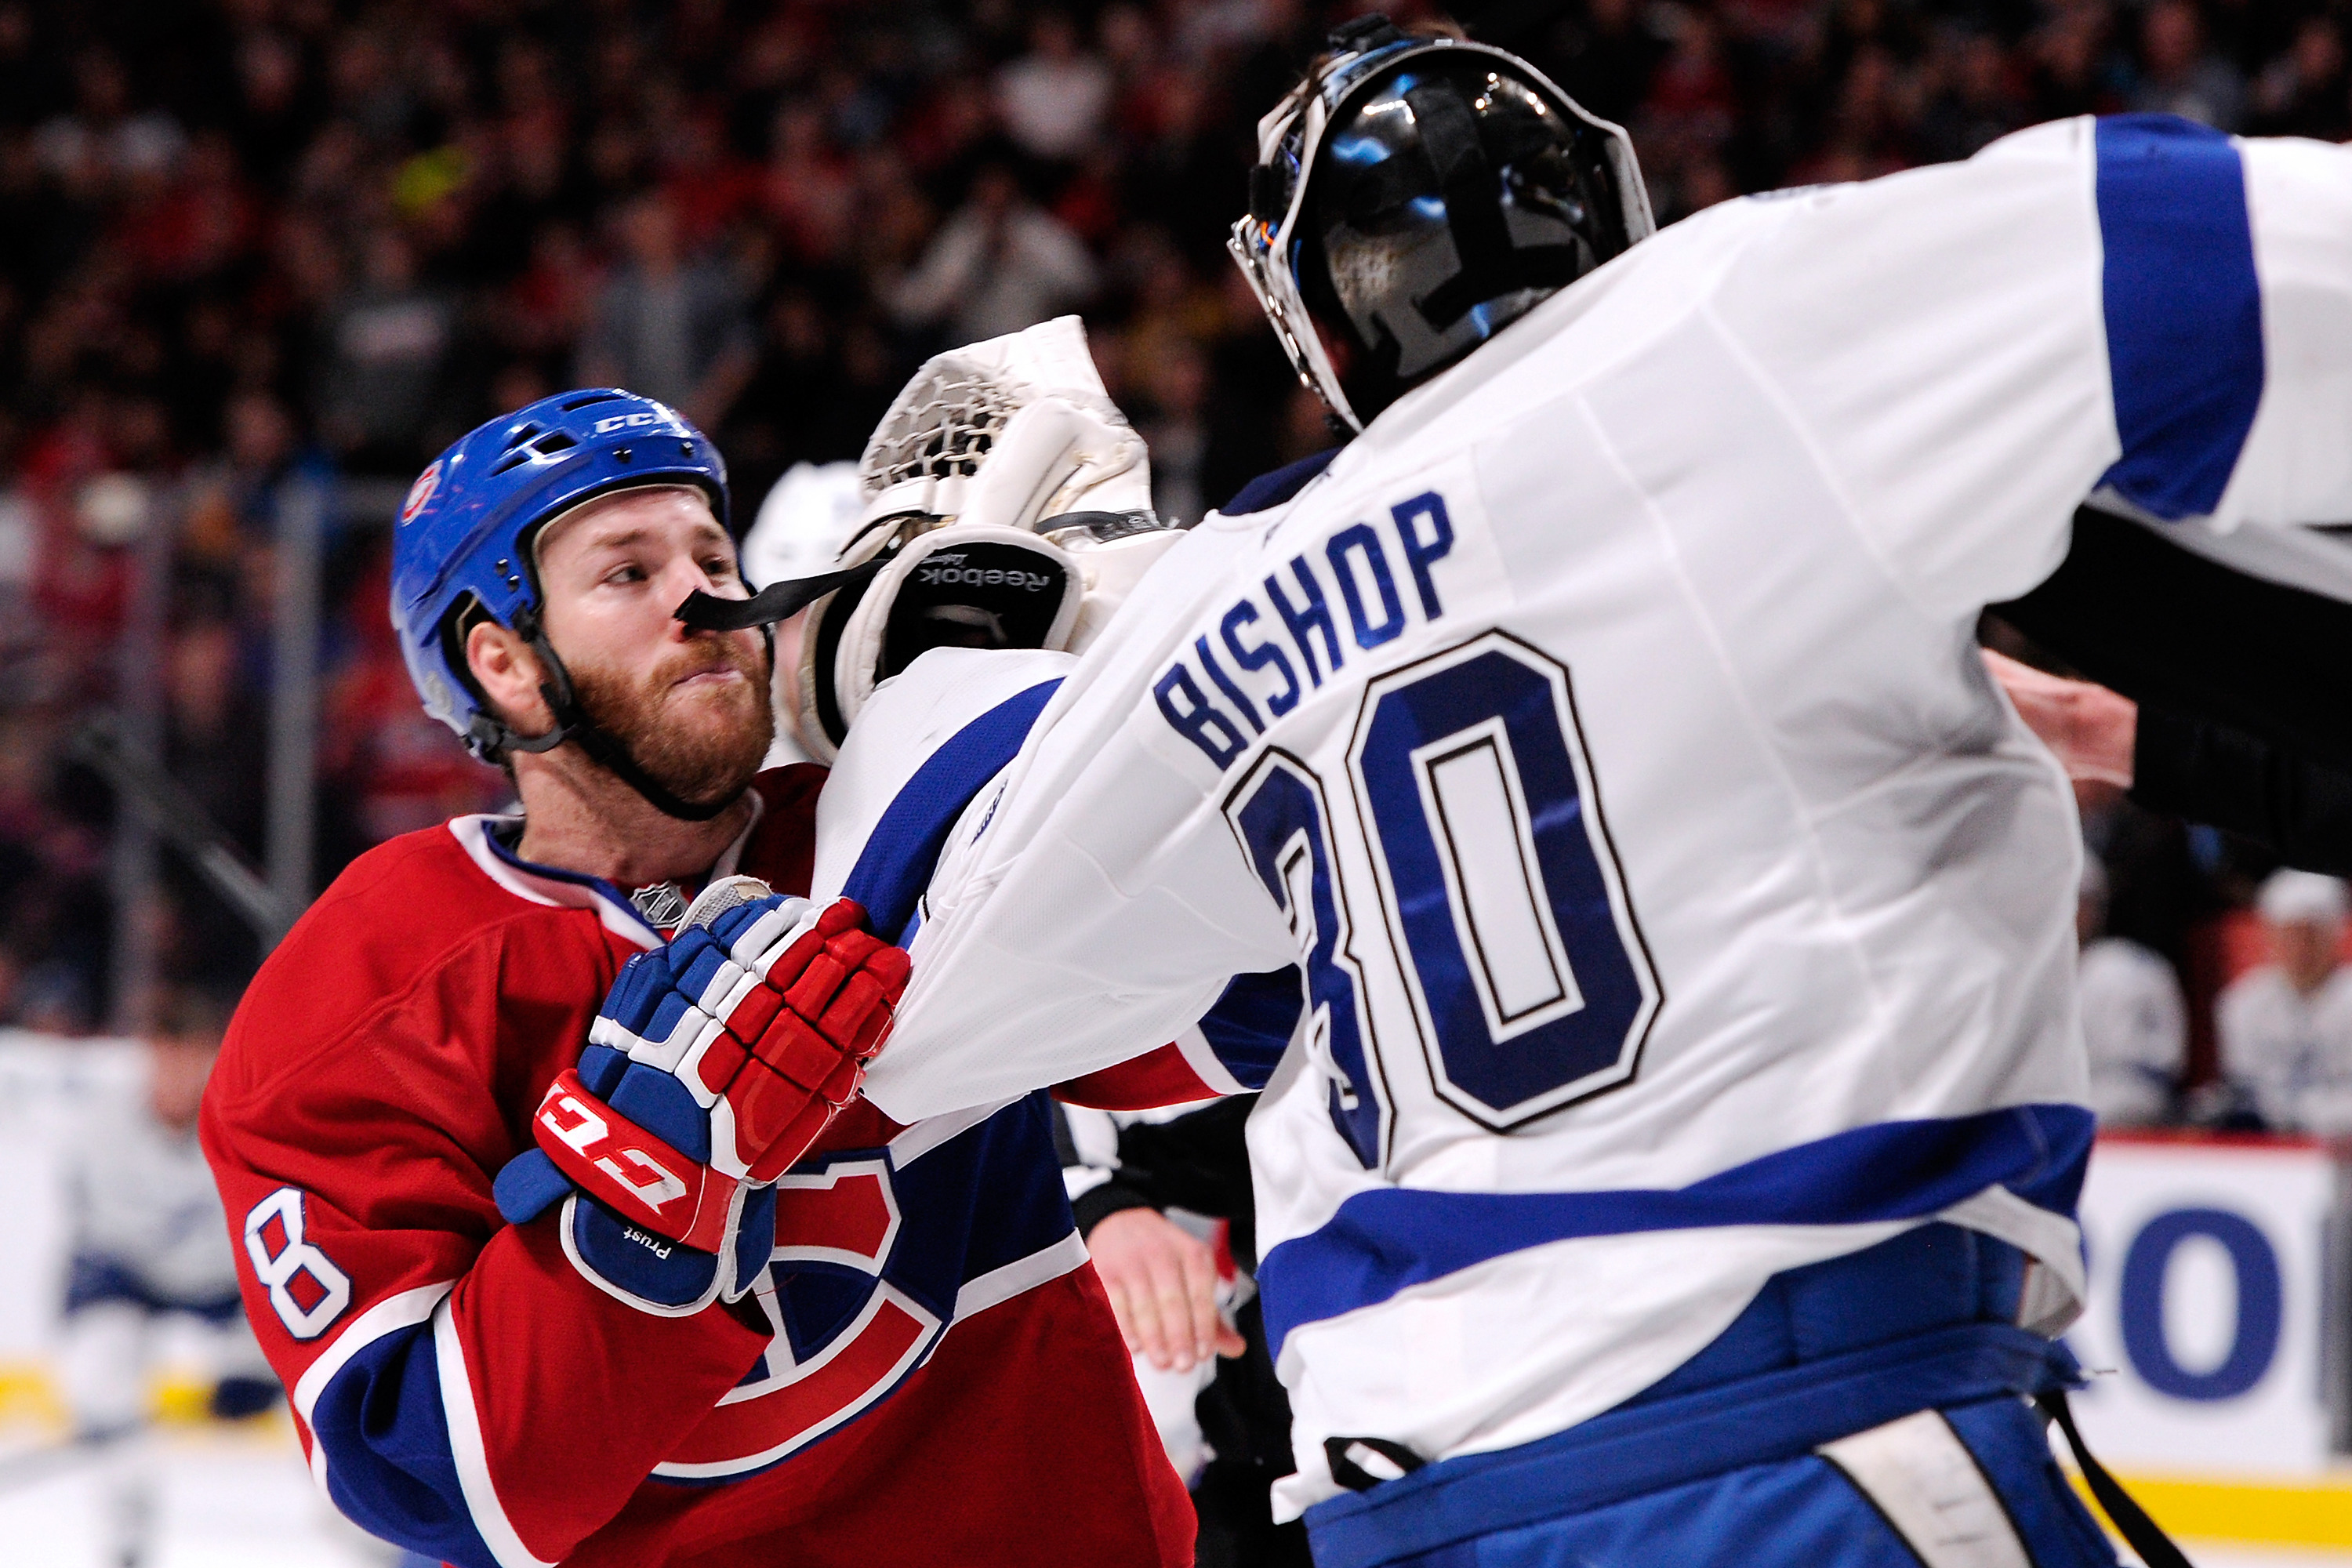 Ben Bishop, Brandon Prust debate meaning of life on ice and it …